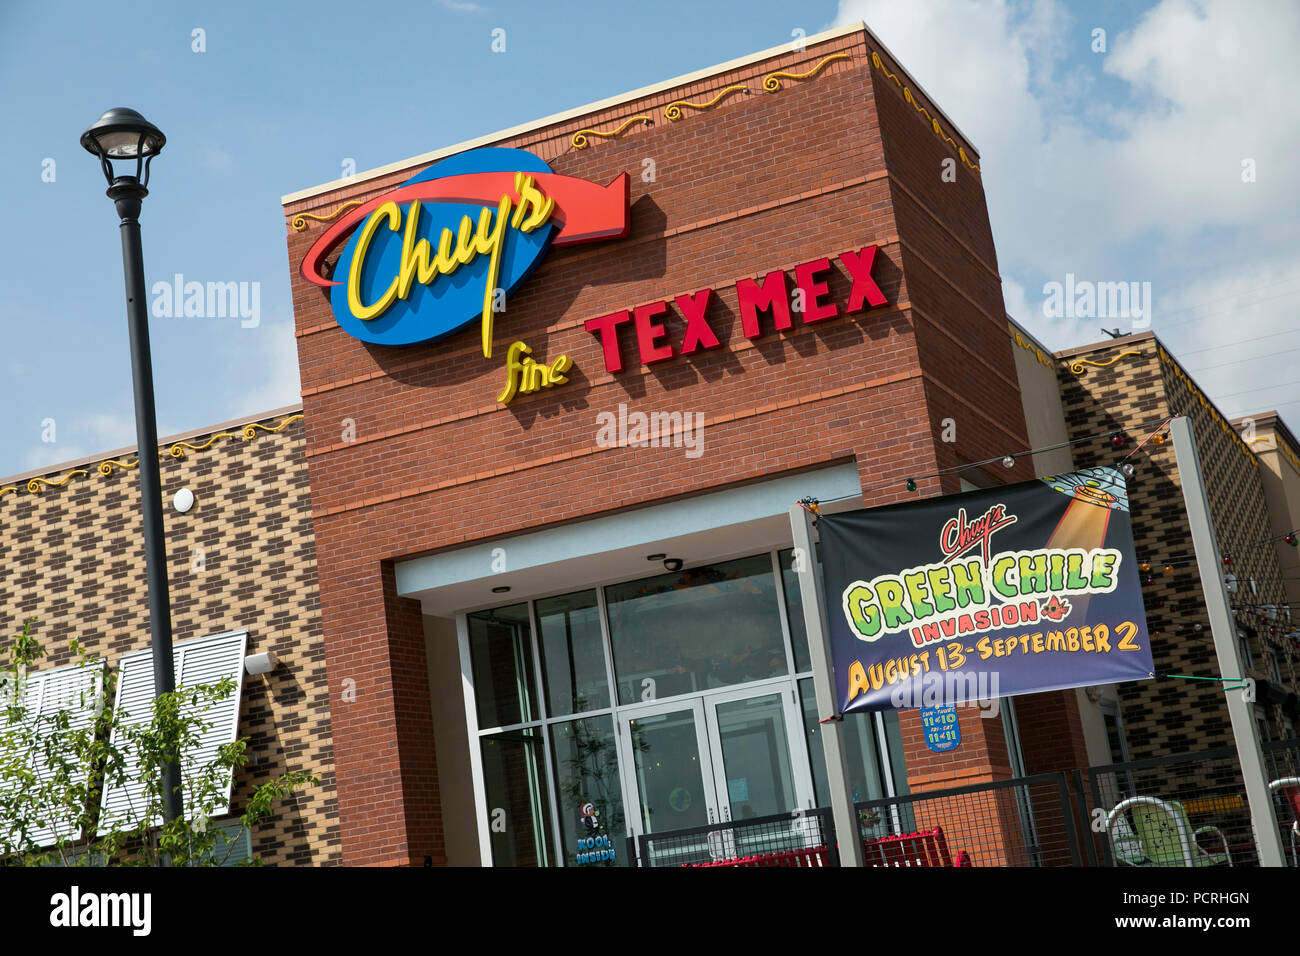 A logo sign outside of a Chuy's restaurant location in Westminster, Colorado, on July 23, 2018. - Stock Image